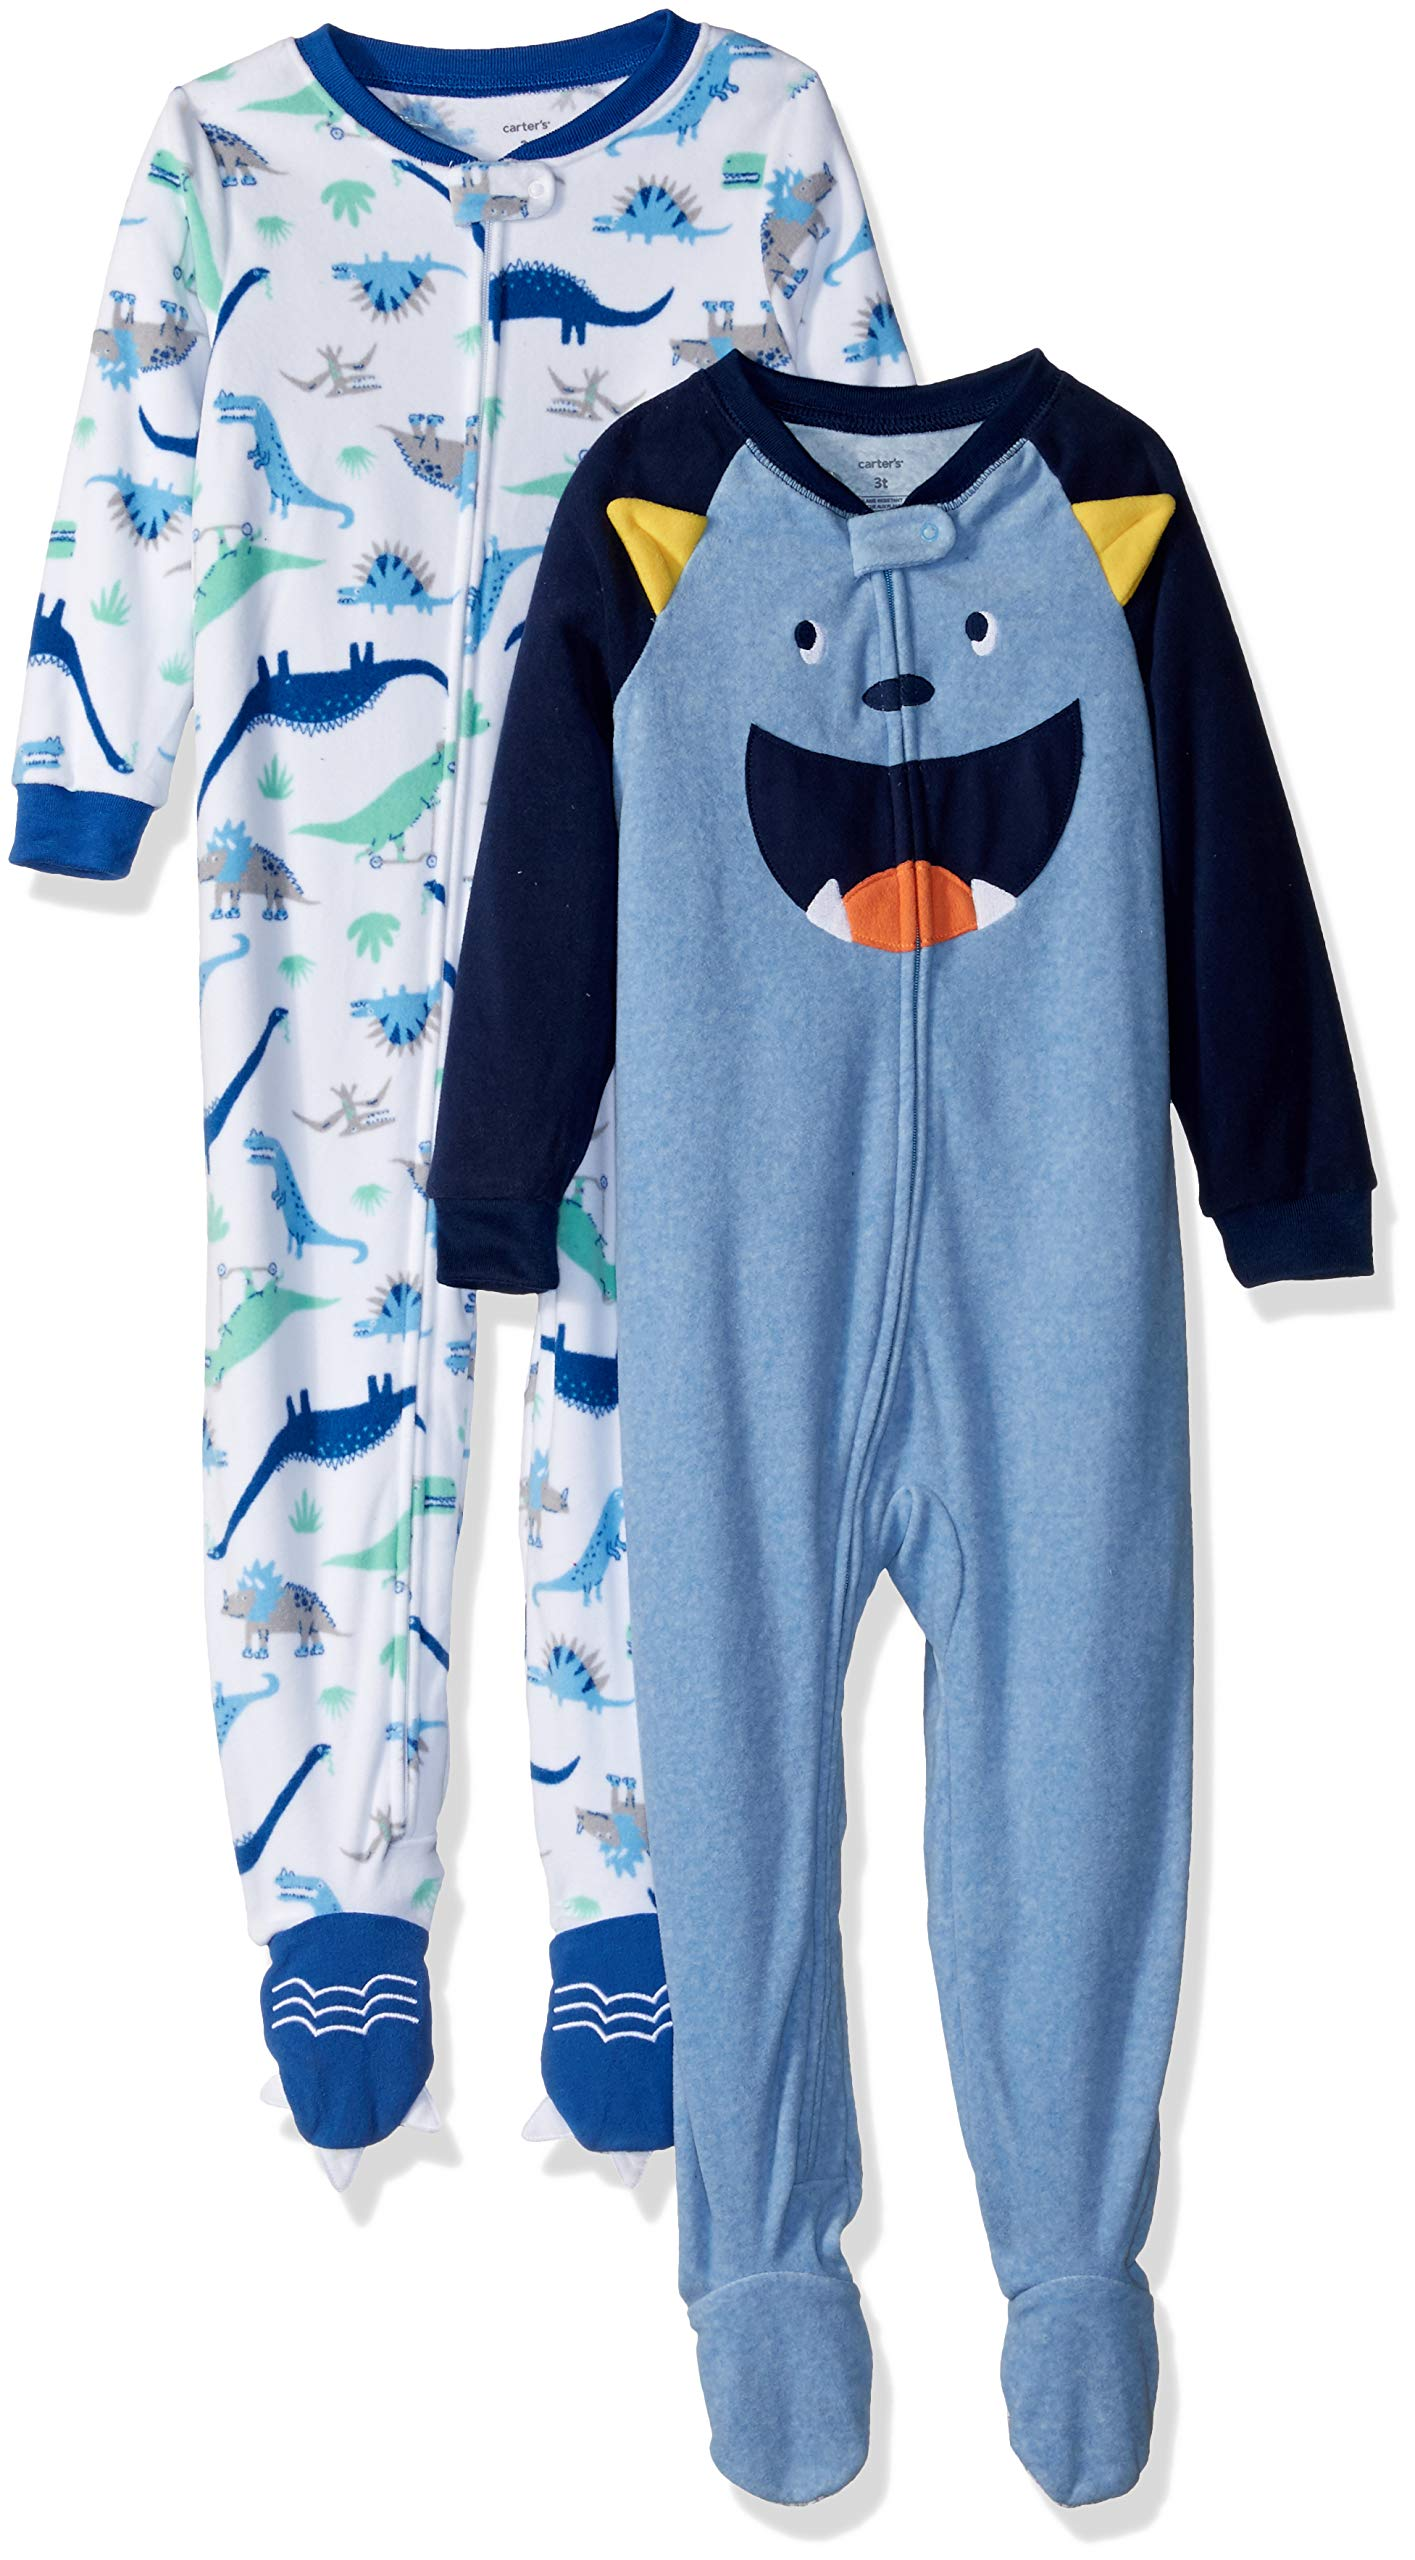 51bb61e55 Carter s Baby Boys  2-Pack Fleece Pajamas